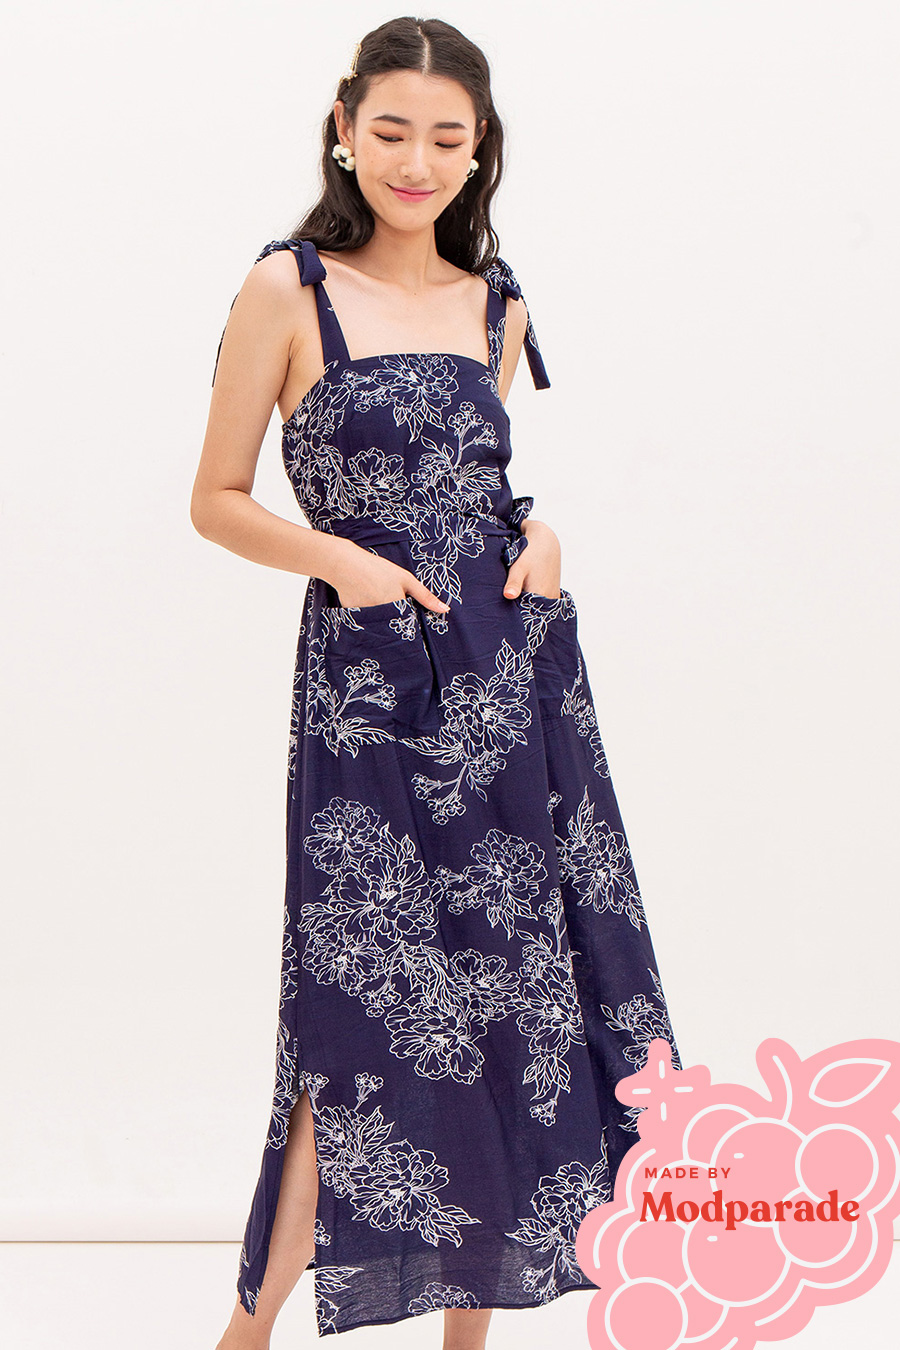 *RESTOCKED* PIERA DRESS - MIDNIGHT BLOOM [BY MODPARADE]